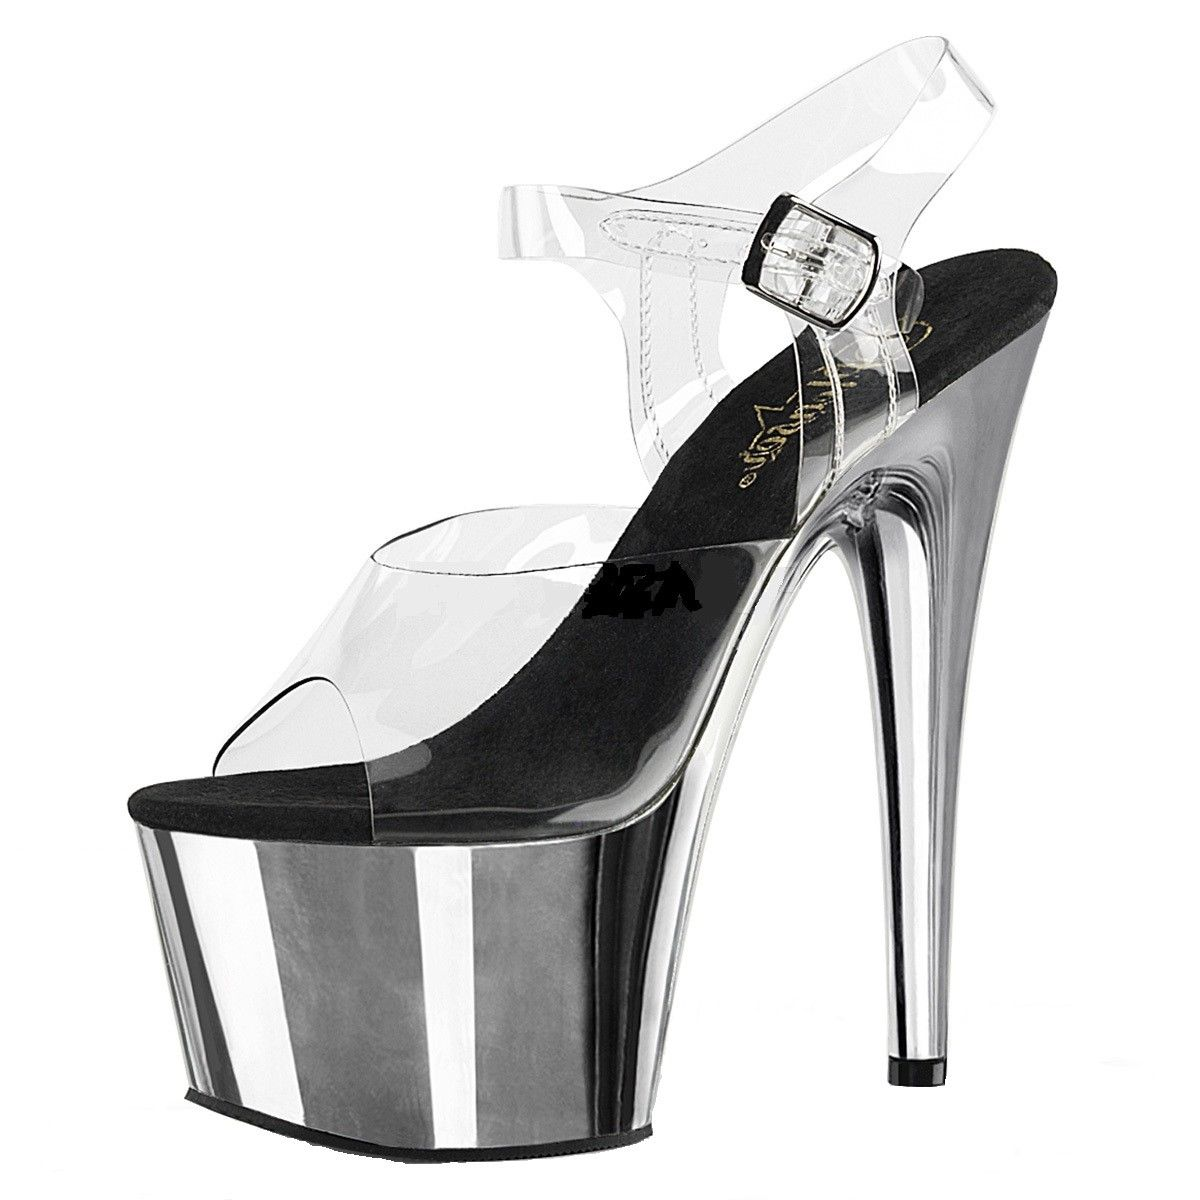 0d4779c3f Clear Silver; Pleaser Adore-708 Women's Exotic Dancing Ankle Strap 7